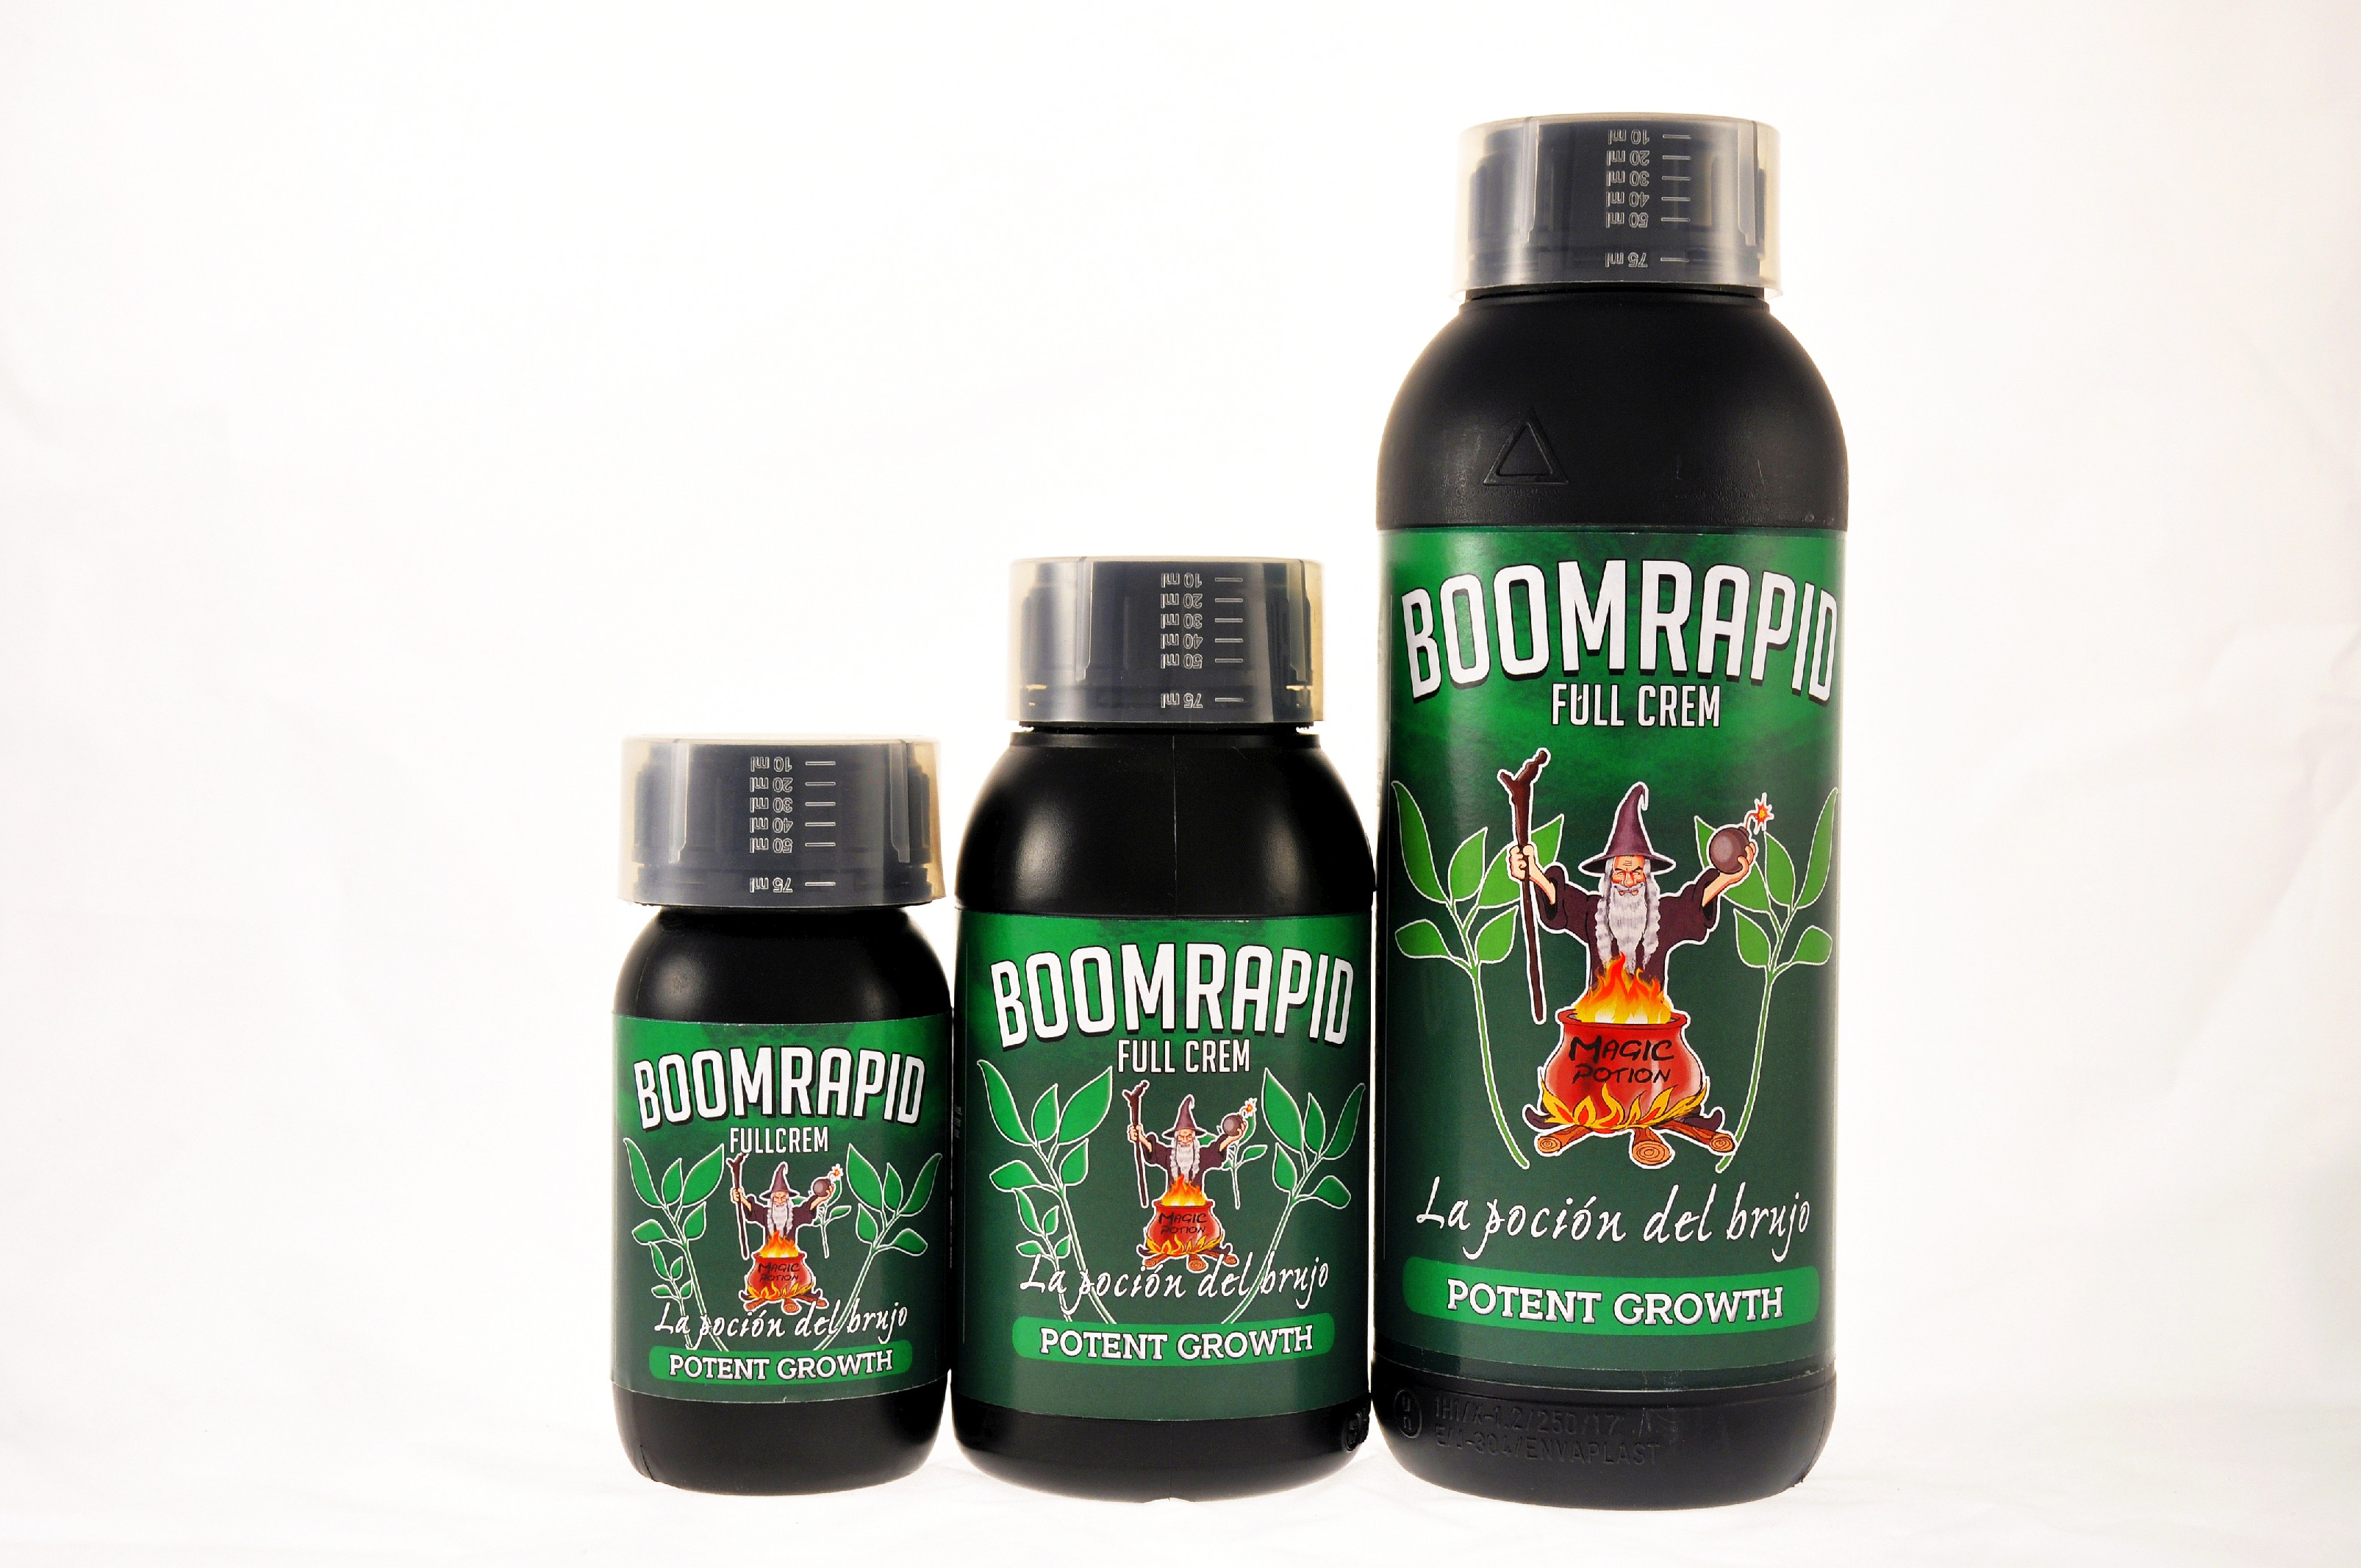 CANNABOOM - Boomrapid Fullcrem 200ml